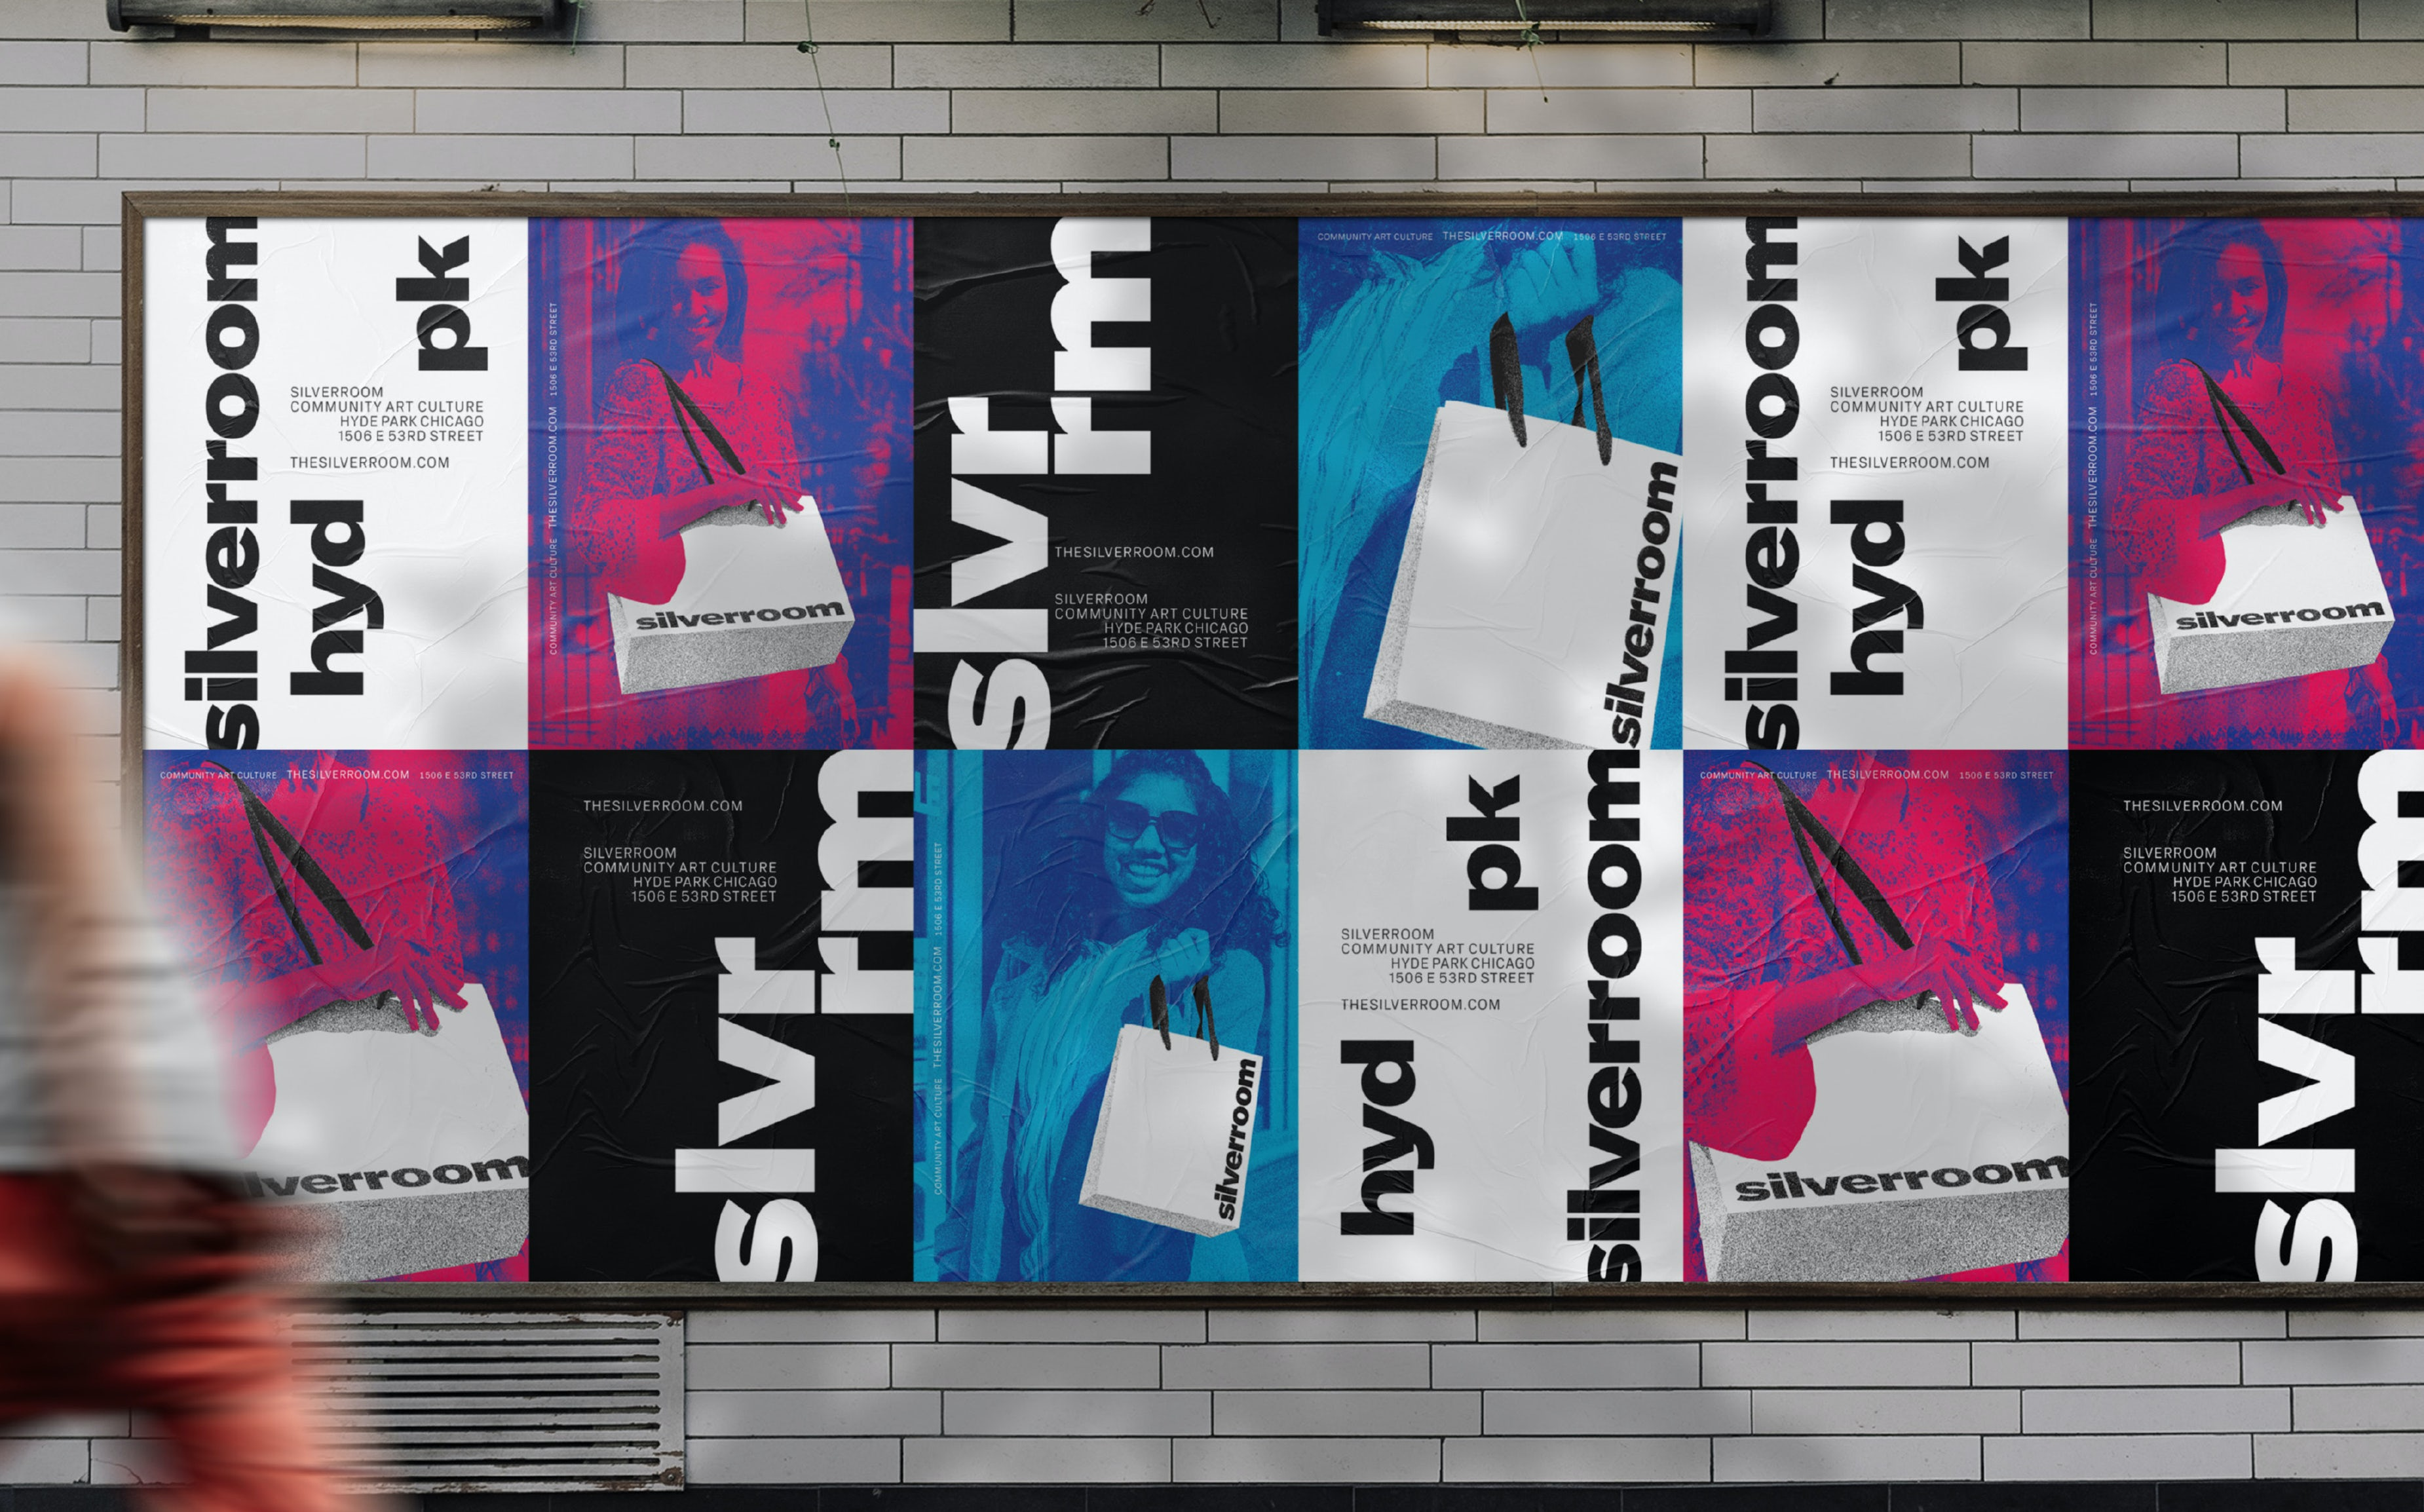 Silverroom Graphic Design Ad Campaign Poster Billboard Typography Span 02